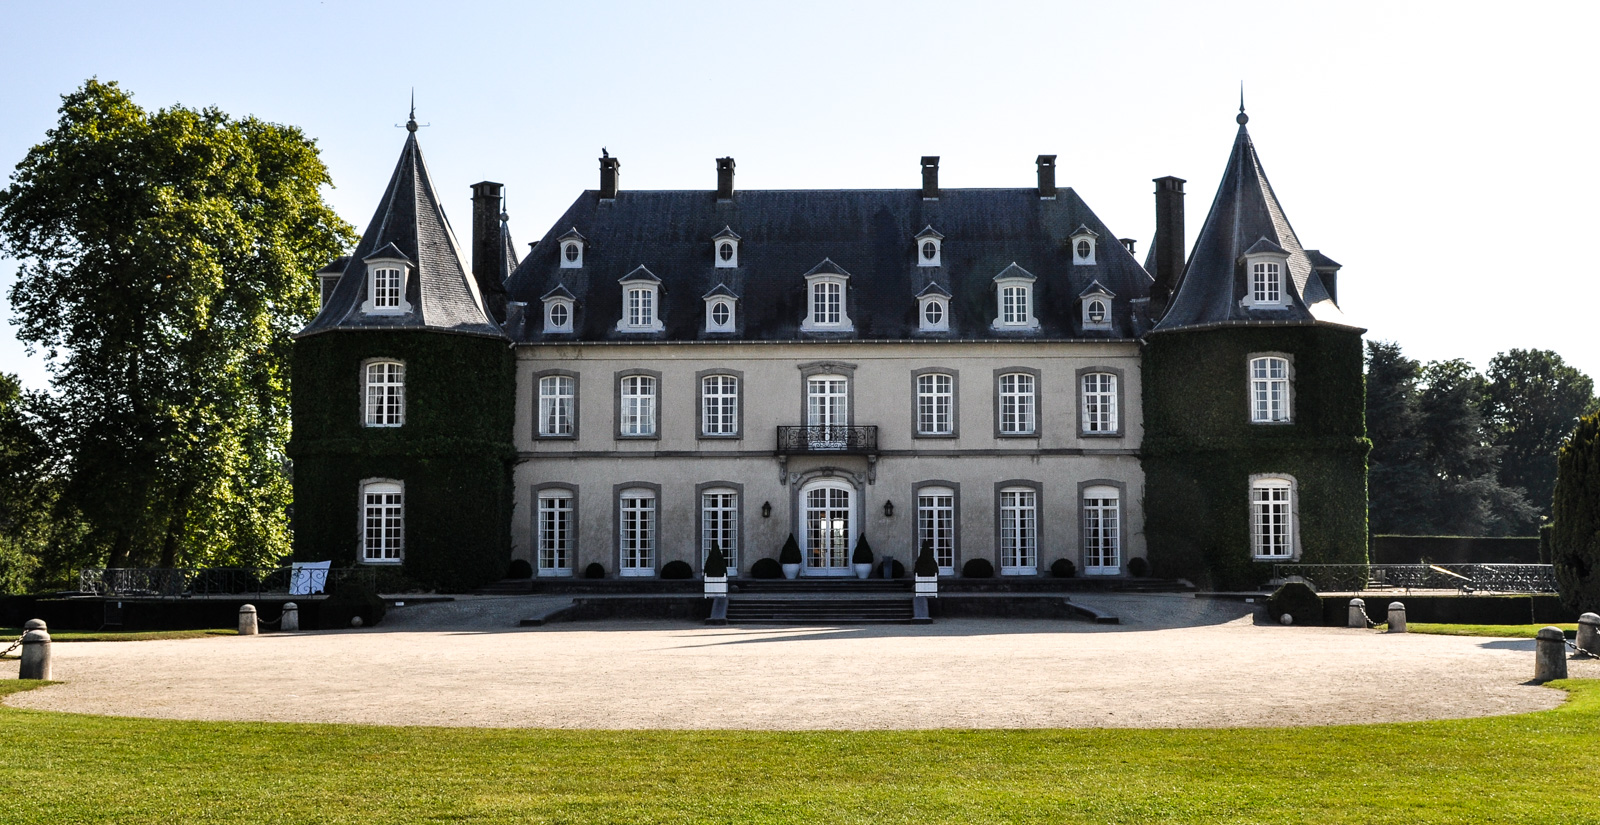 19_chateau_castles_location_shooting_film_photo_belgique_belgium